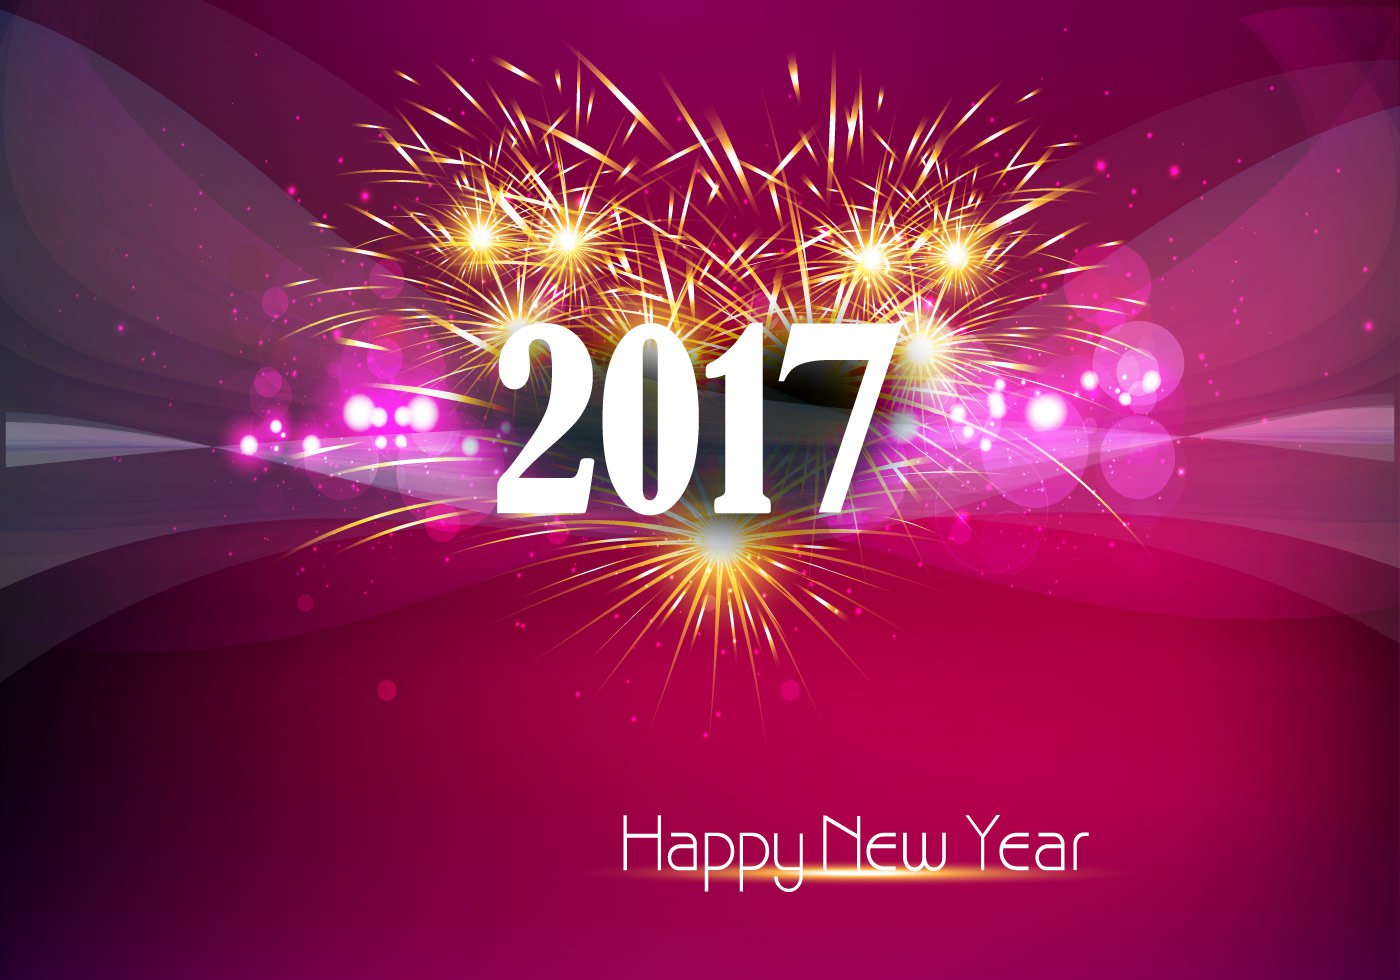 2017 Happy New Year Transparent PNG Pictures - Free Icons and PNG ...